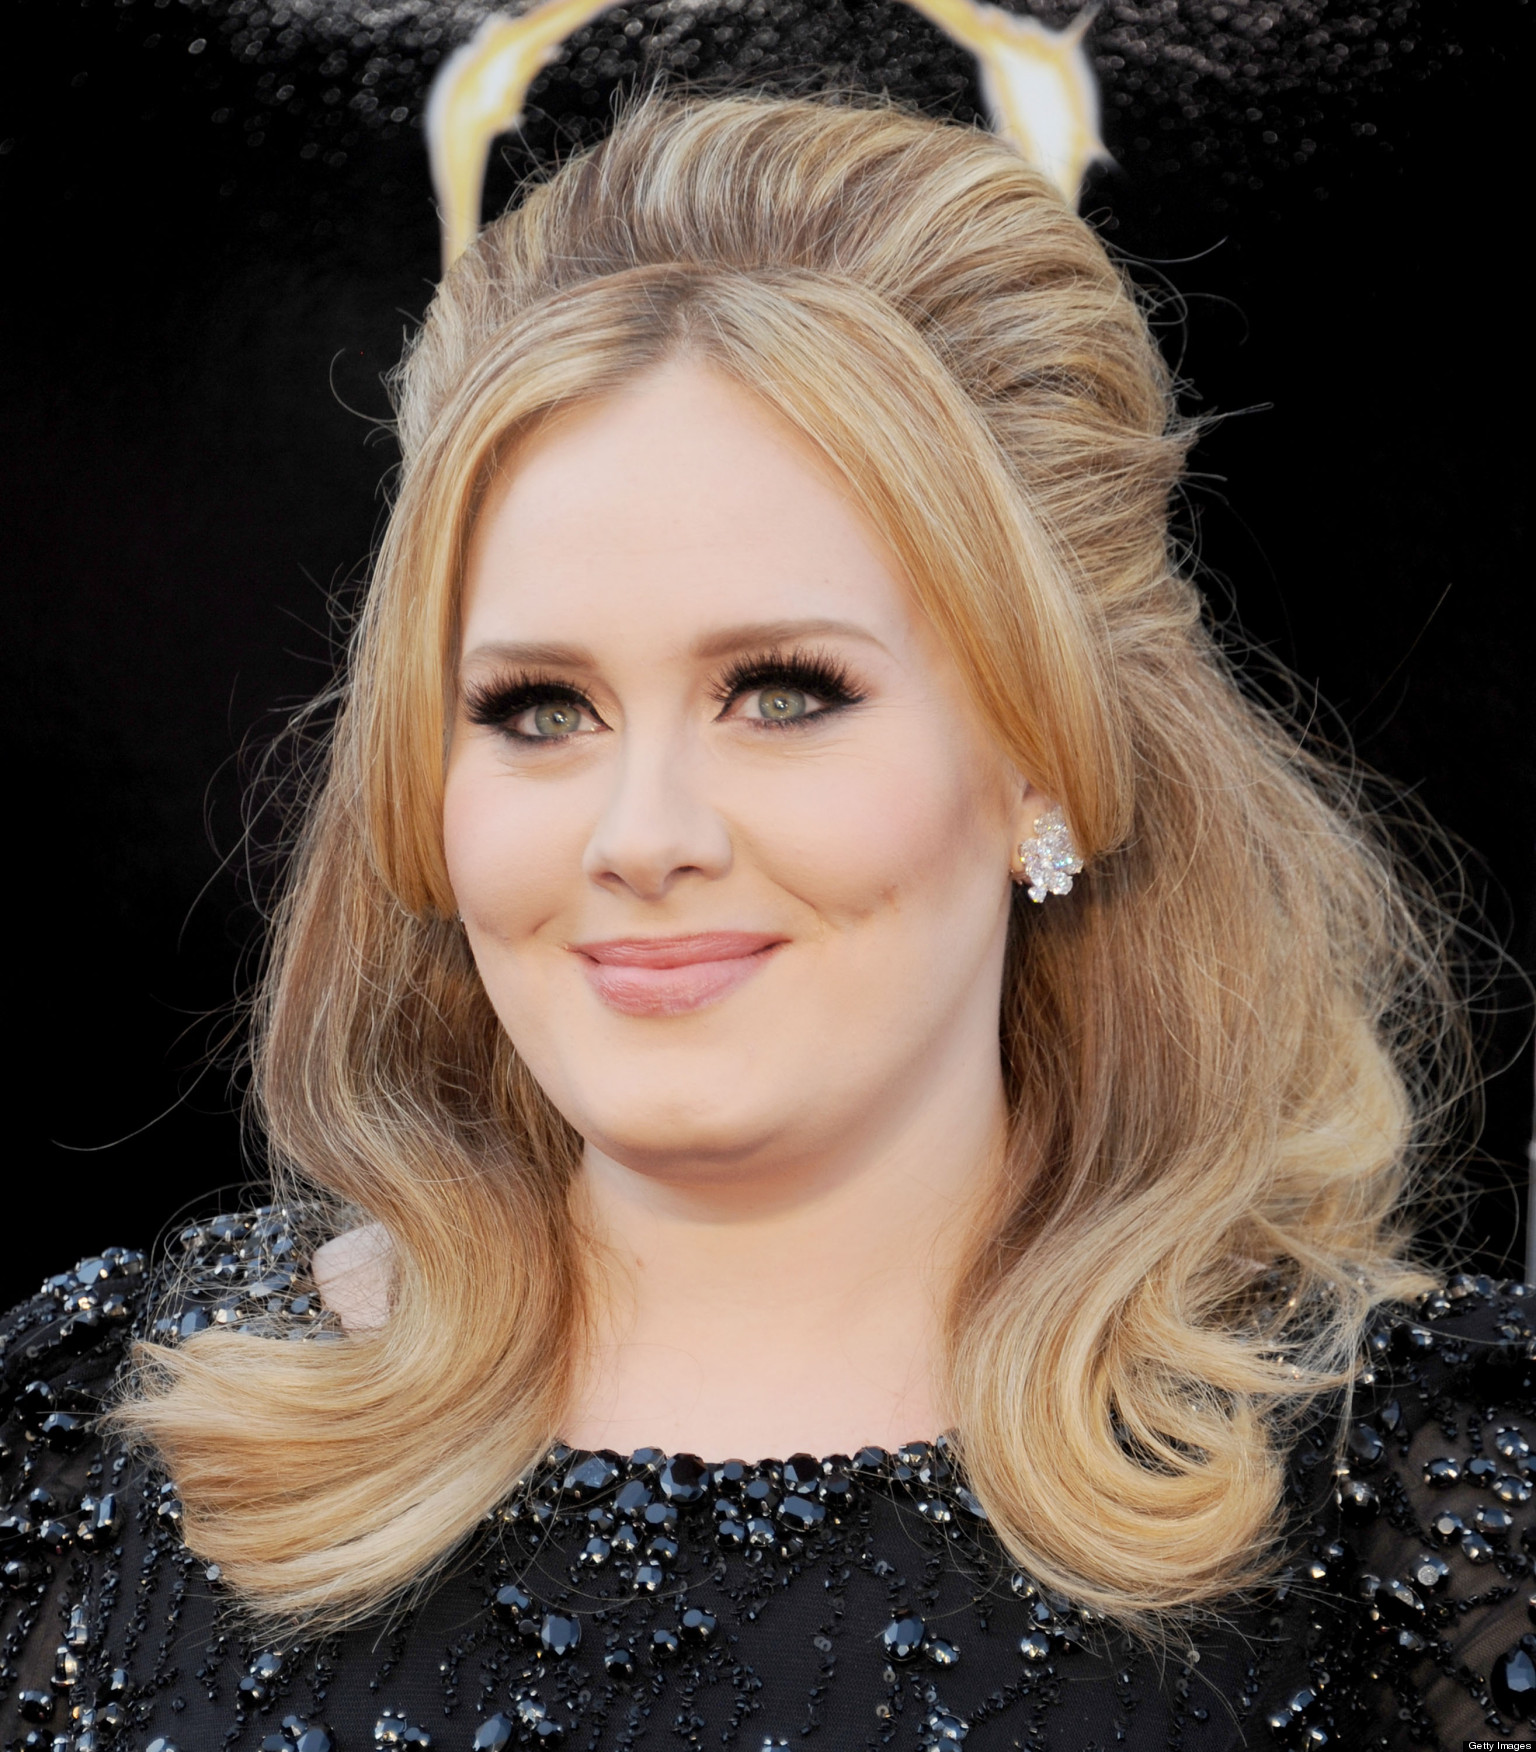 Adele Wedding Singer Reportedly Planning A Lowkey Affair Video